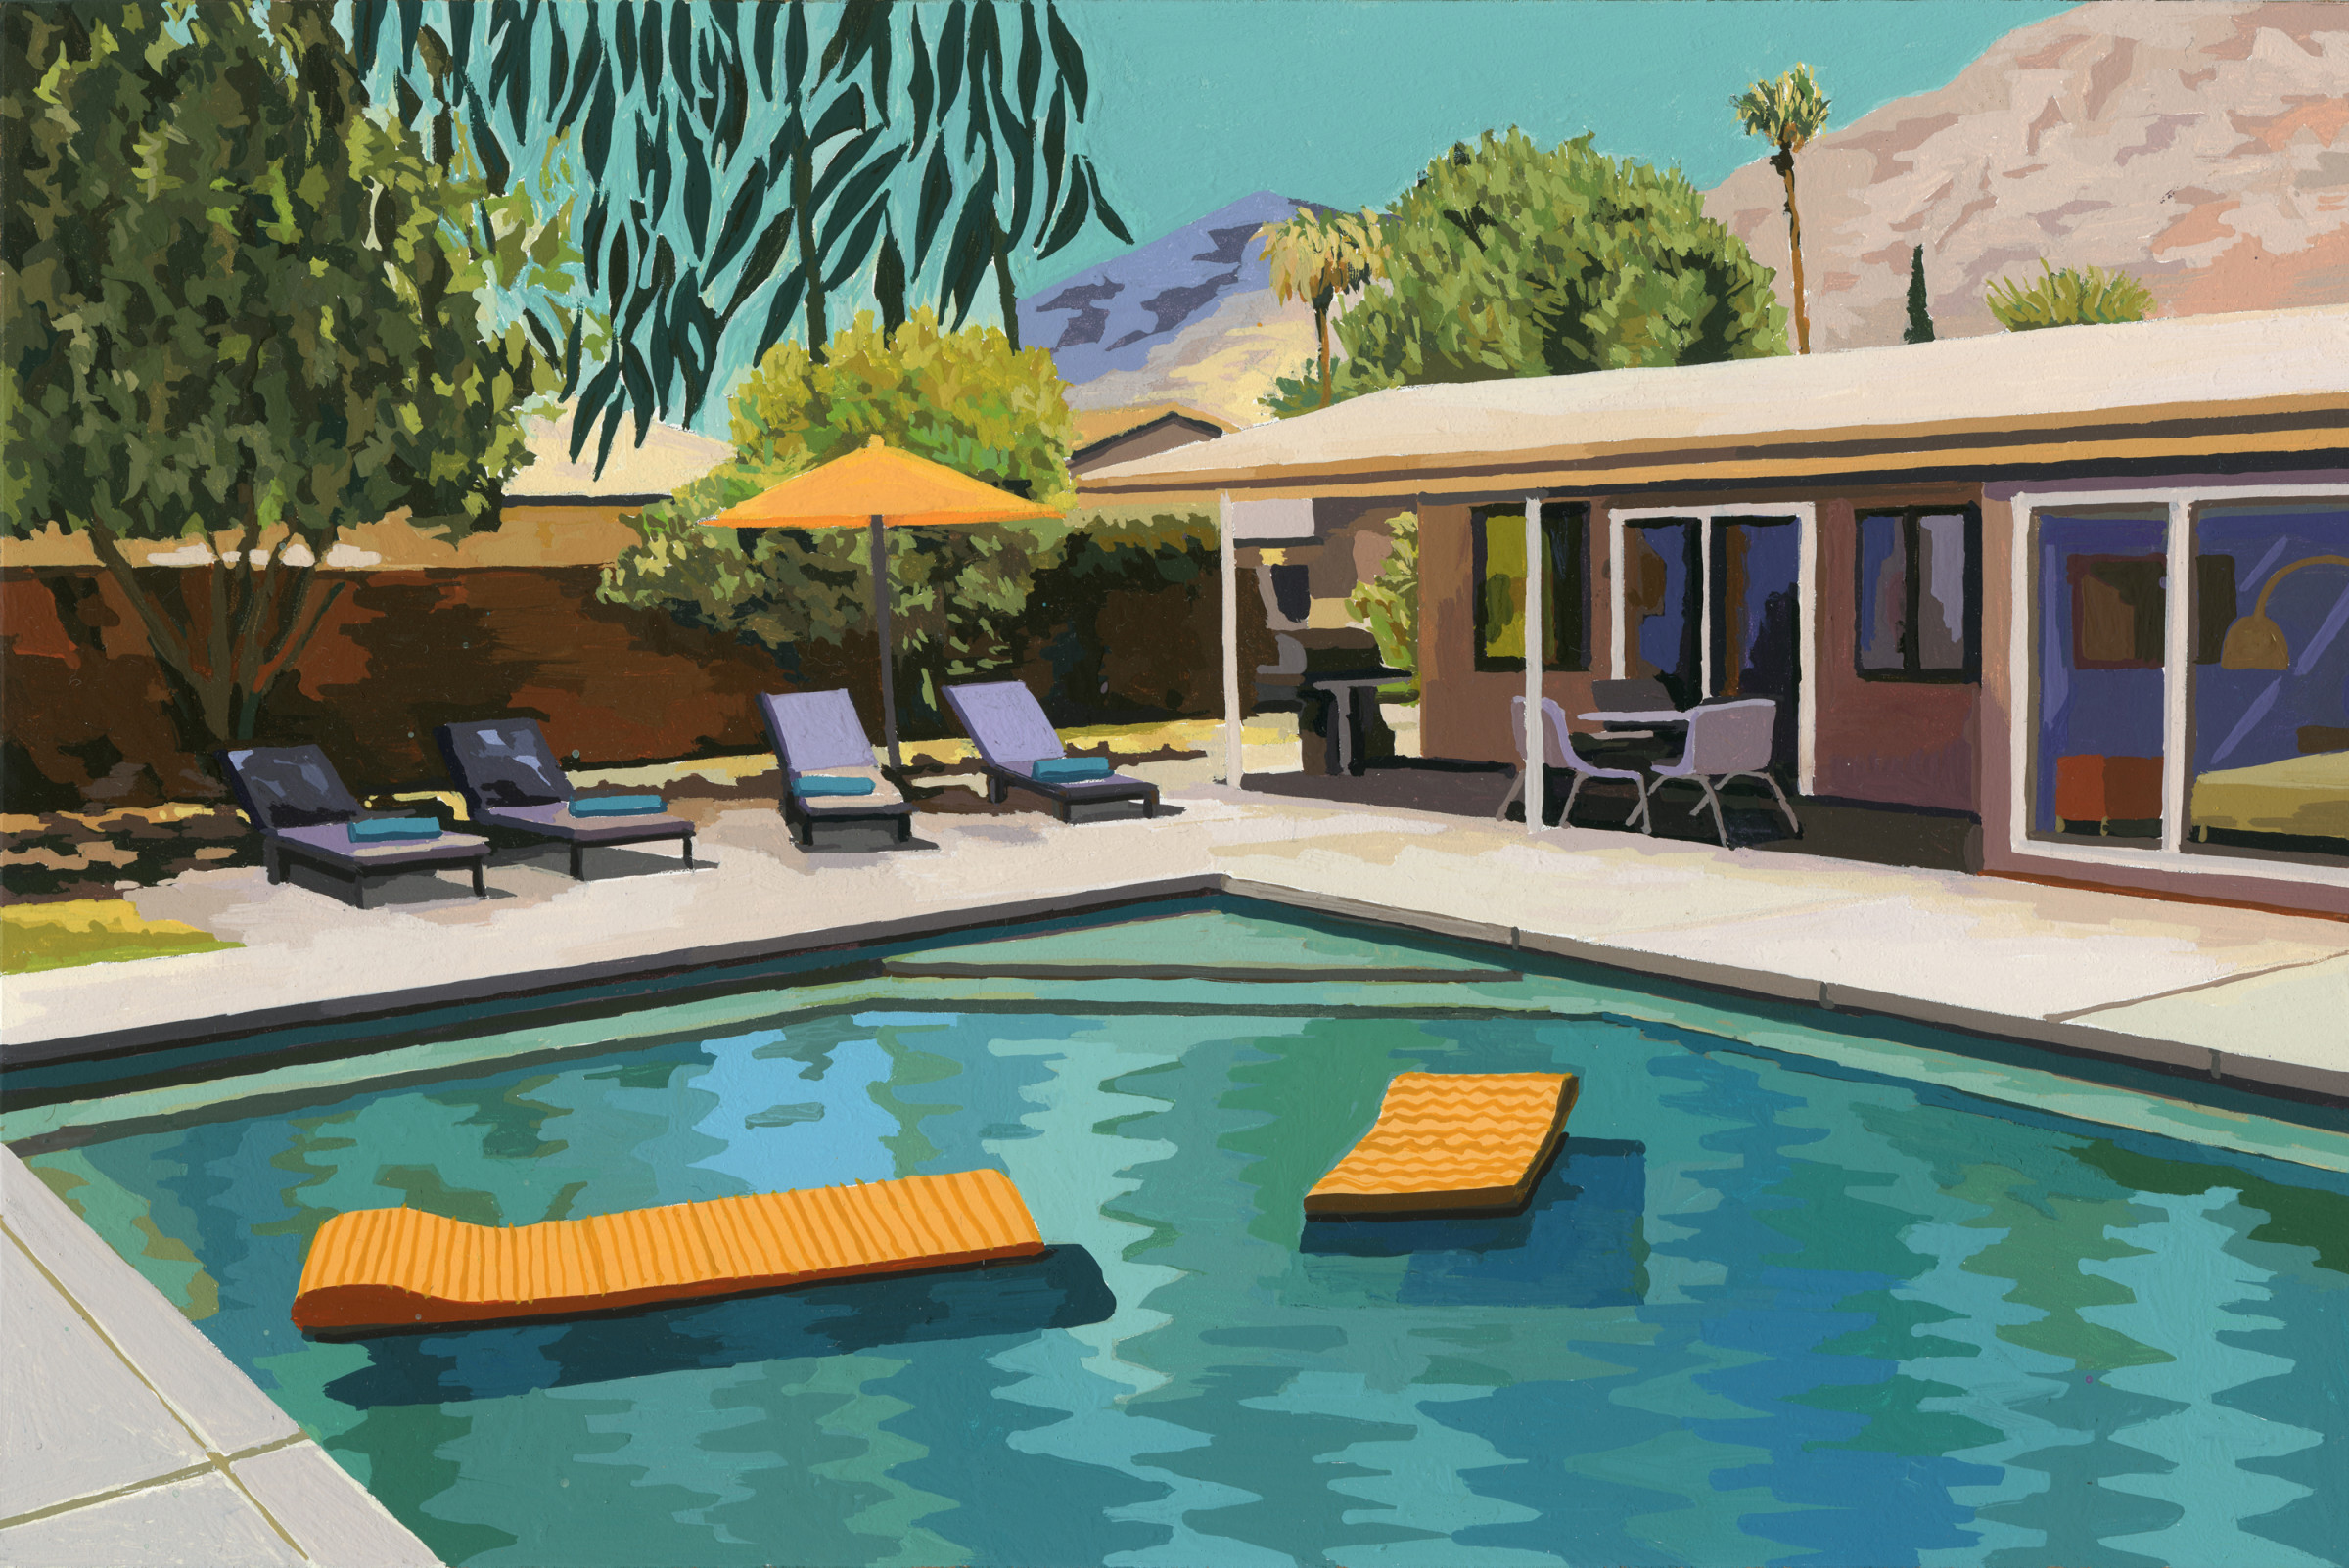 "<span class=""link fancybox-details-link""><a href=""/exhibitions/42/works/artworks3177/"">View Detail Page</a></span><div class=""artist""><strong>Andy Burgess</strong></div><div class=""title""><em>Palm Springs Pool</em>, 2019</div><div class=""medium"">Gouache on Panel</div><div class=""dimensions"">15.2 x 22.9 cm<br>6 x 9 in.</div>"